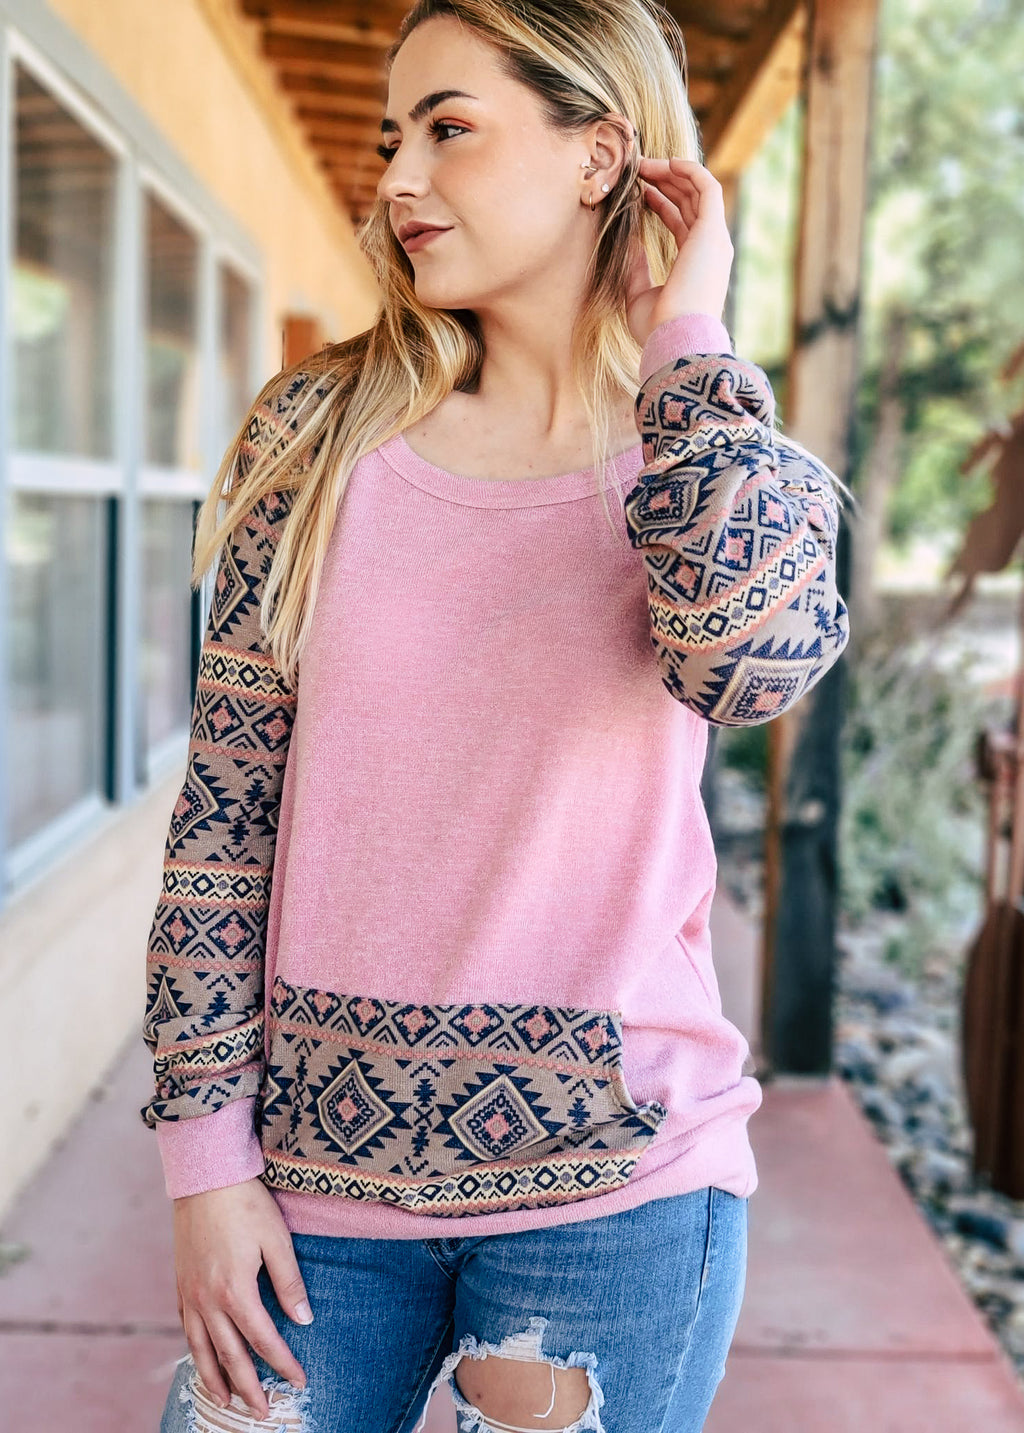 Mauve Aztec Pocket Long Sleeve Top om blonde model with distressed denim jeans